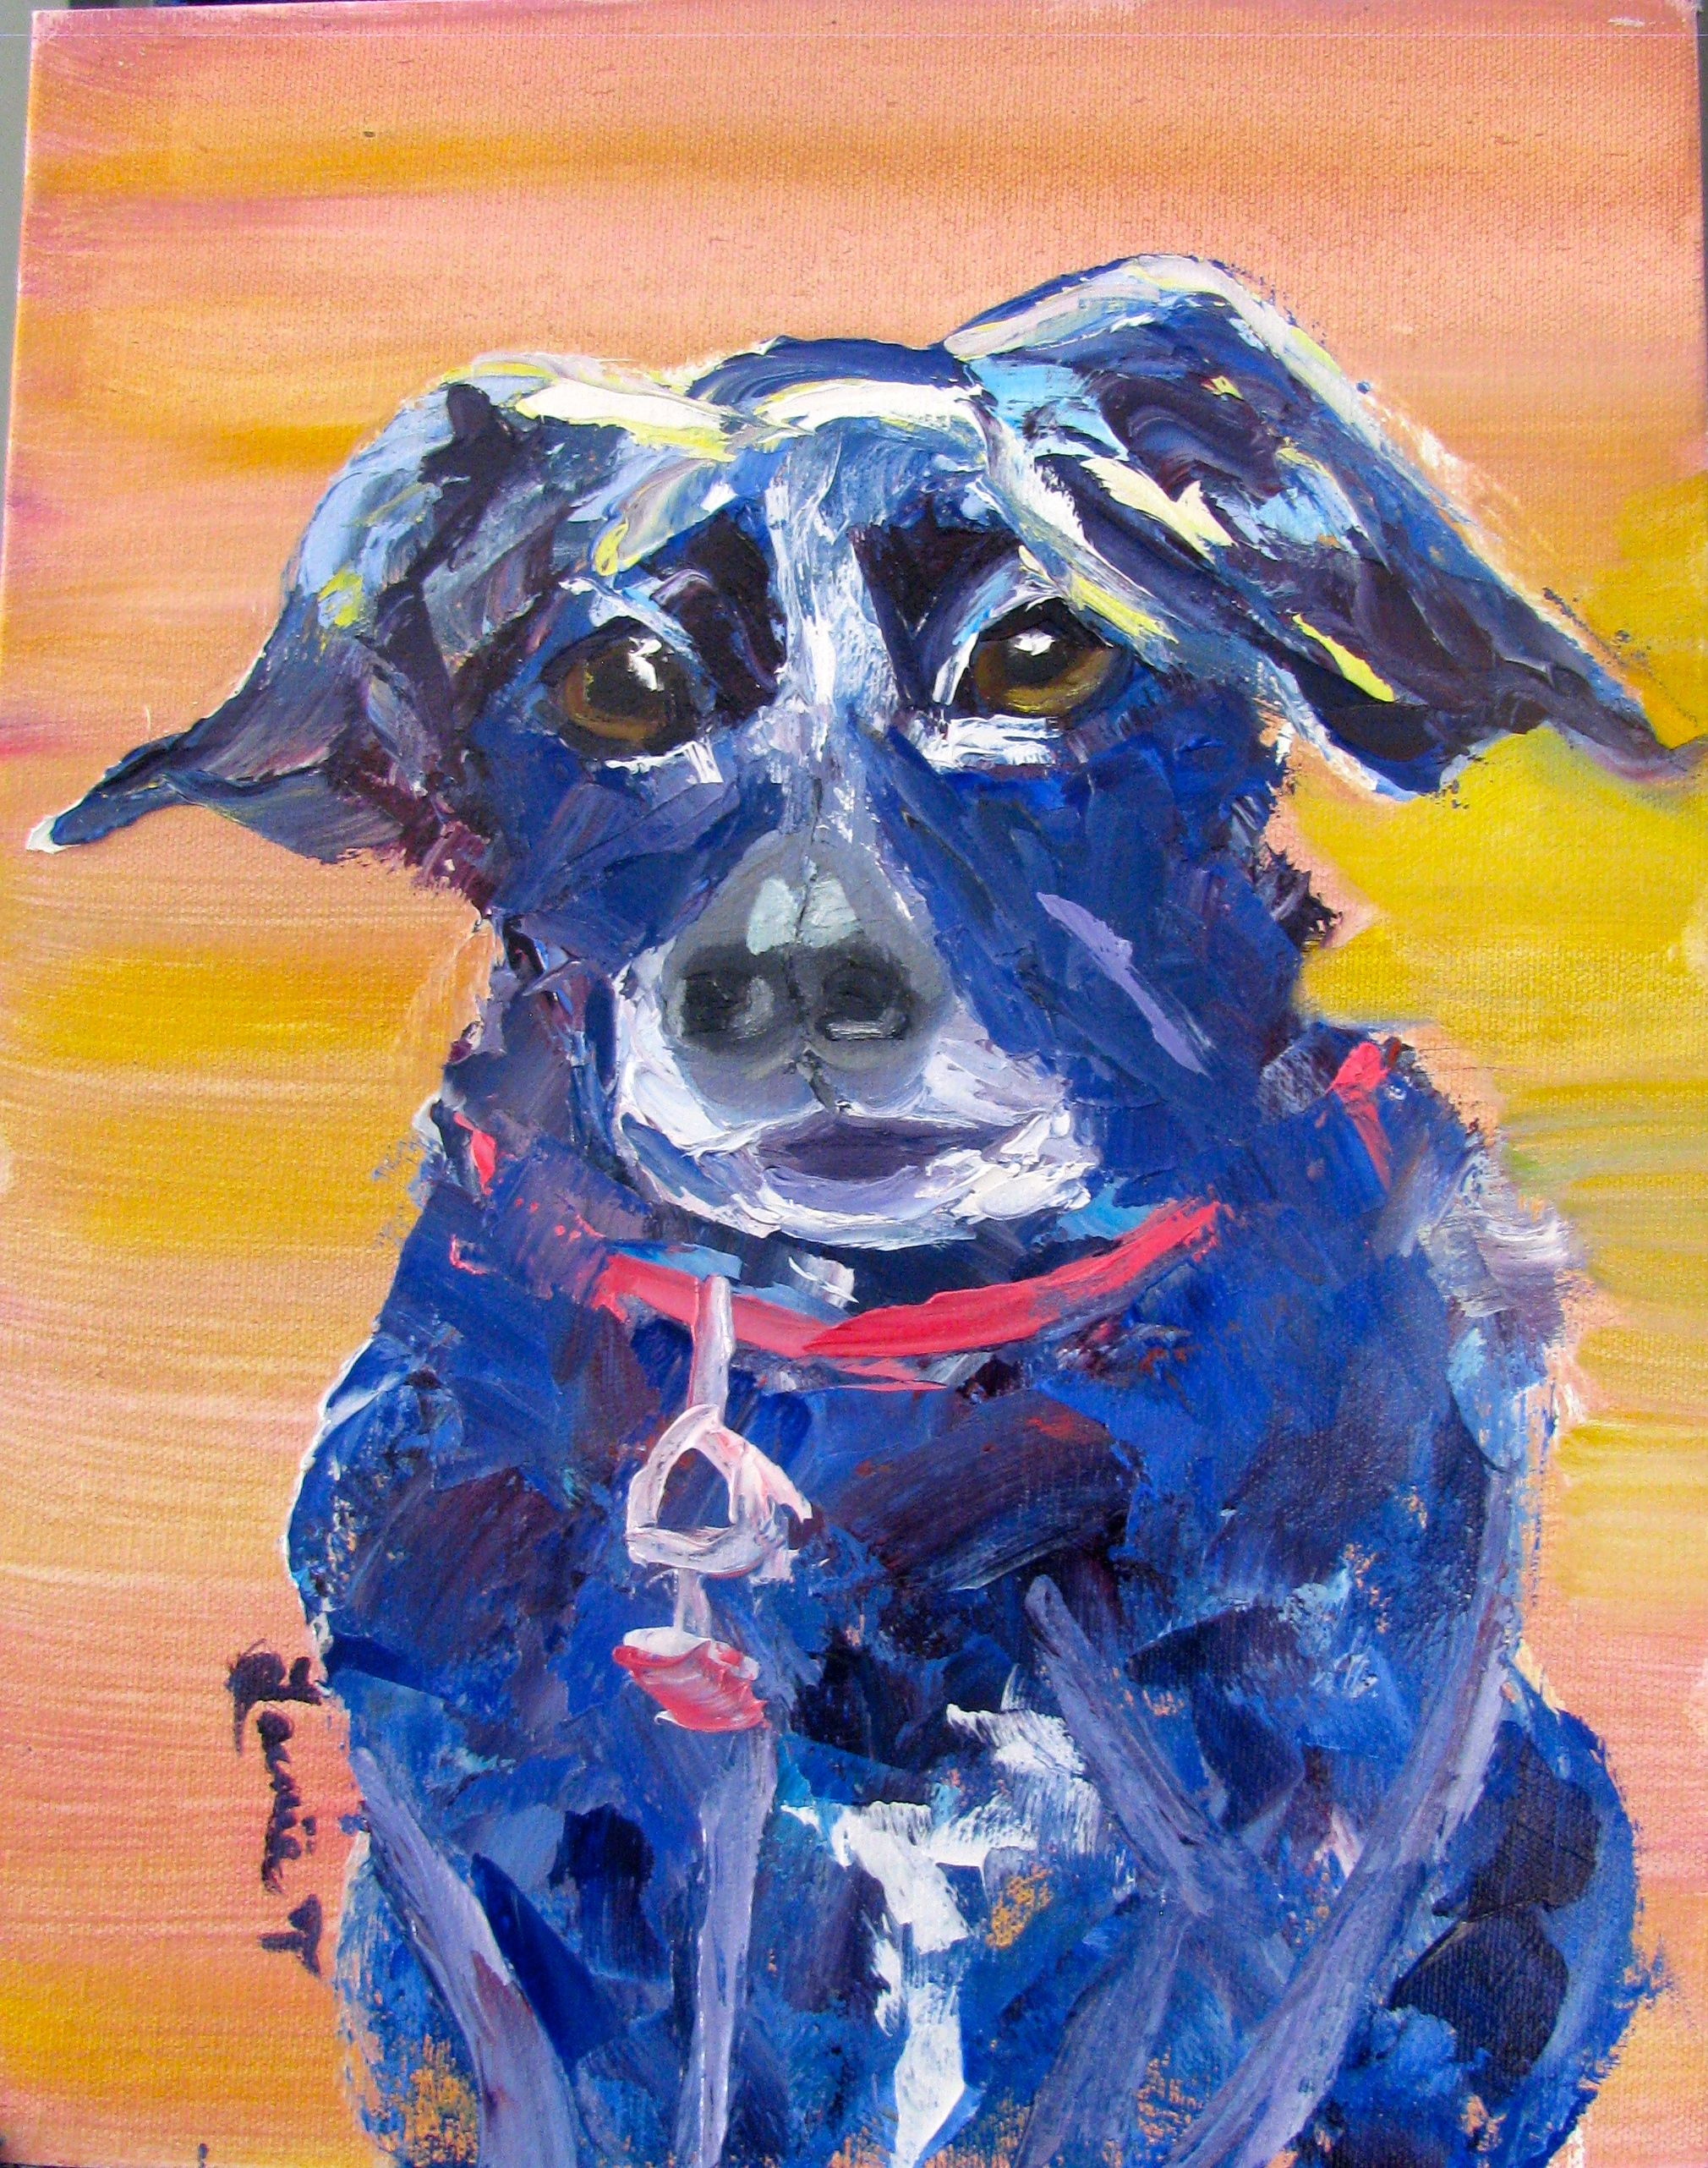 """We love the painting!  The colors you chose for Sadie's fur are lovely.  Her eyes look so expressive in the painting.  You captured her intelligence. Thank you Laurie!"" - Laura, 2014"